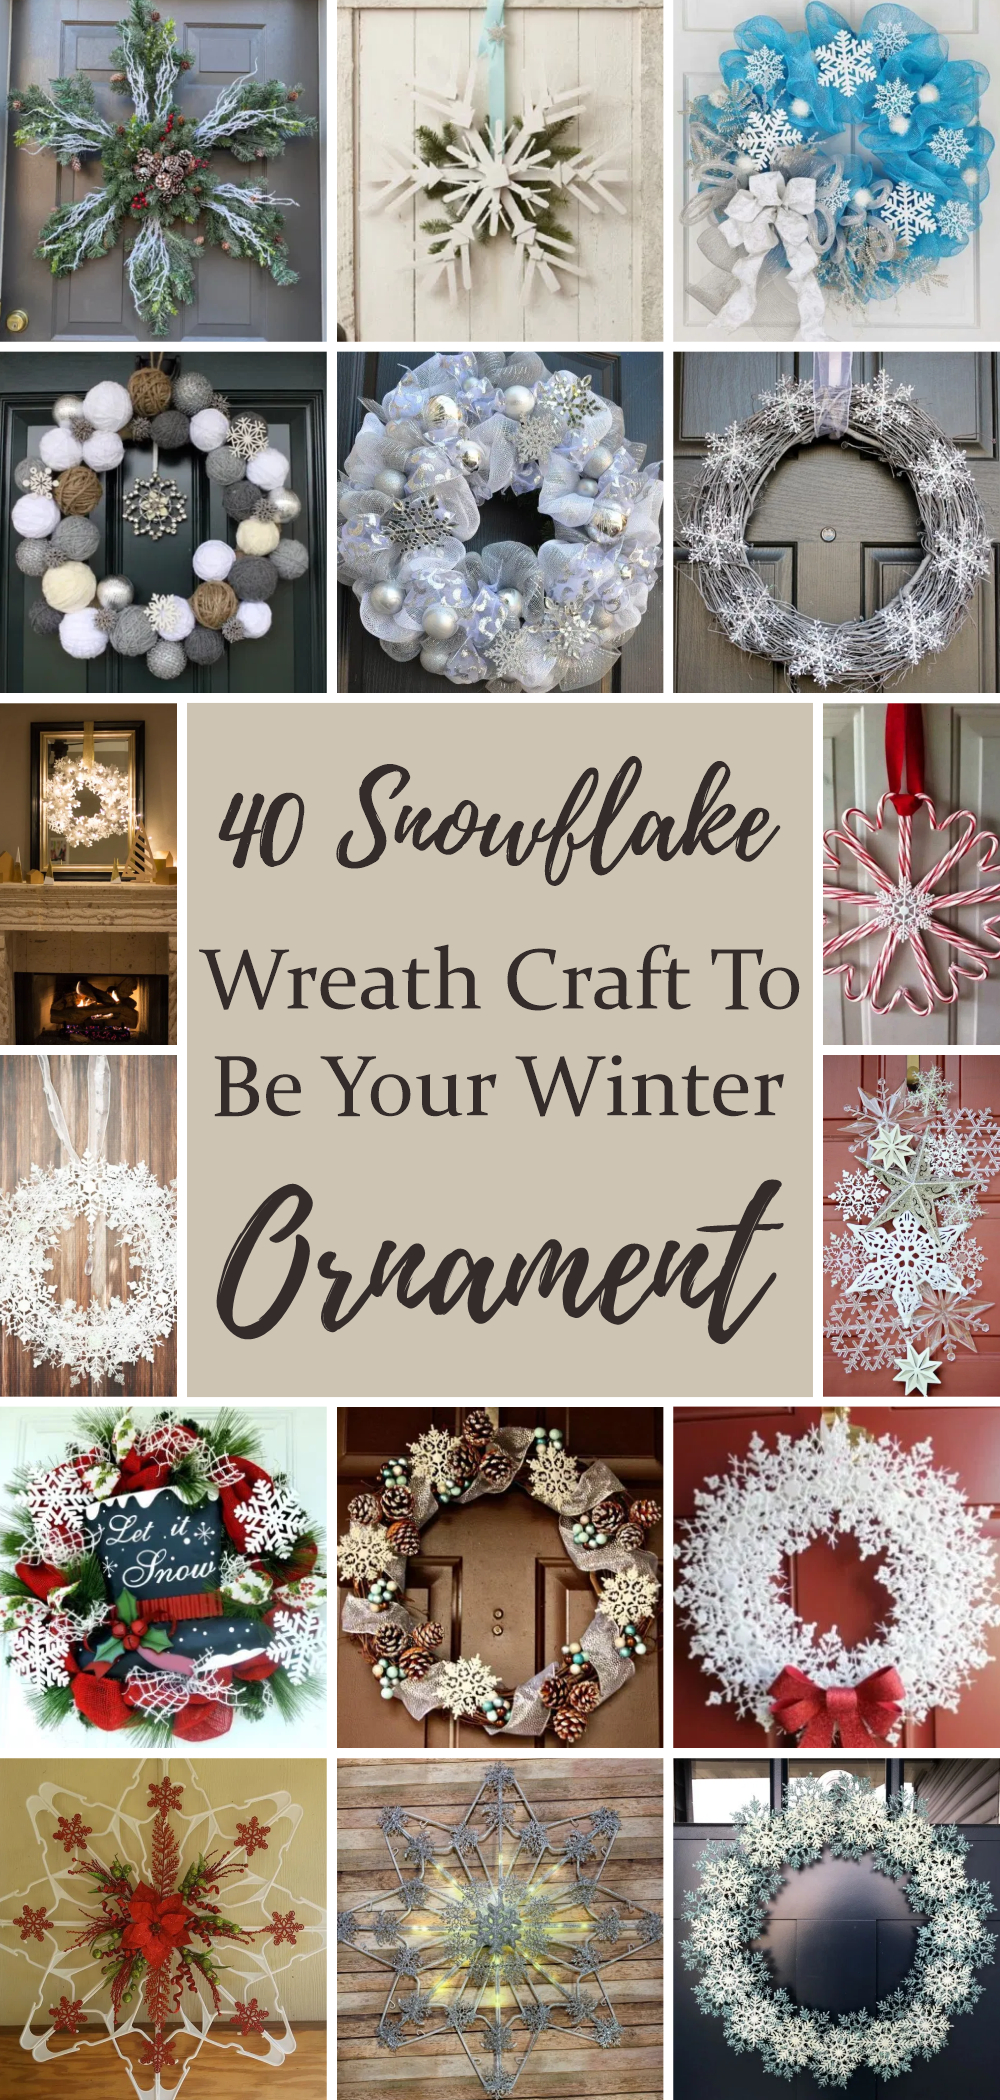 40 snowflake wreath craft to be your winter ornament 1